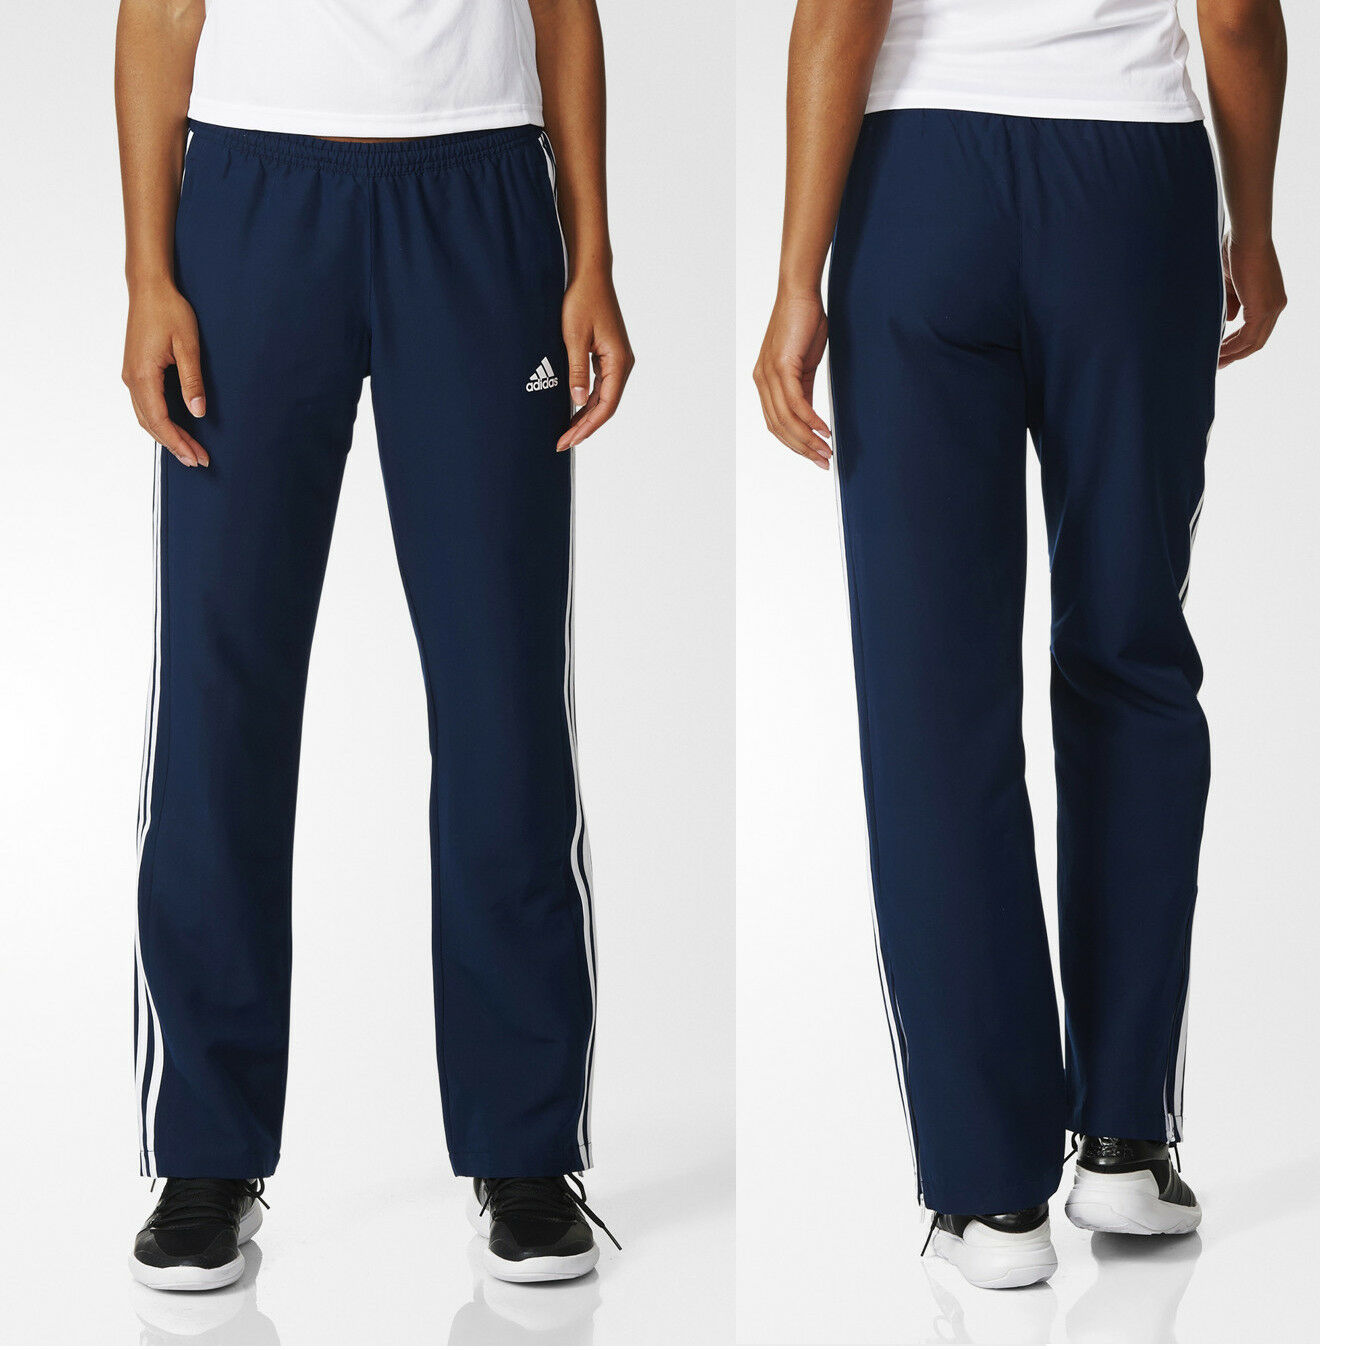 c7f21dbecb6 Details about adidas Team T16 Women's Navy Tracksuit Trousers Running Gym  Sports Track Pants